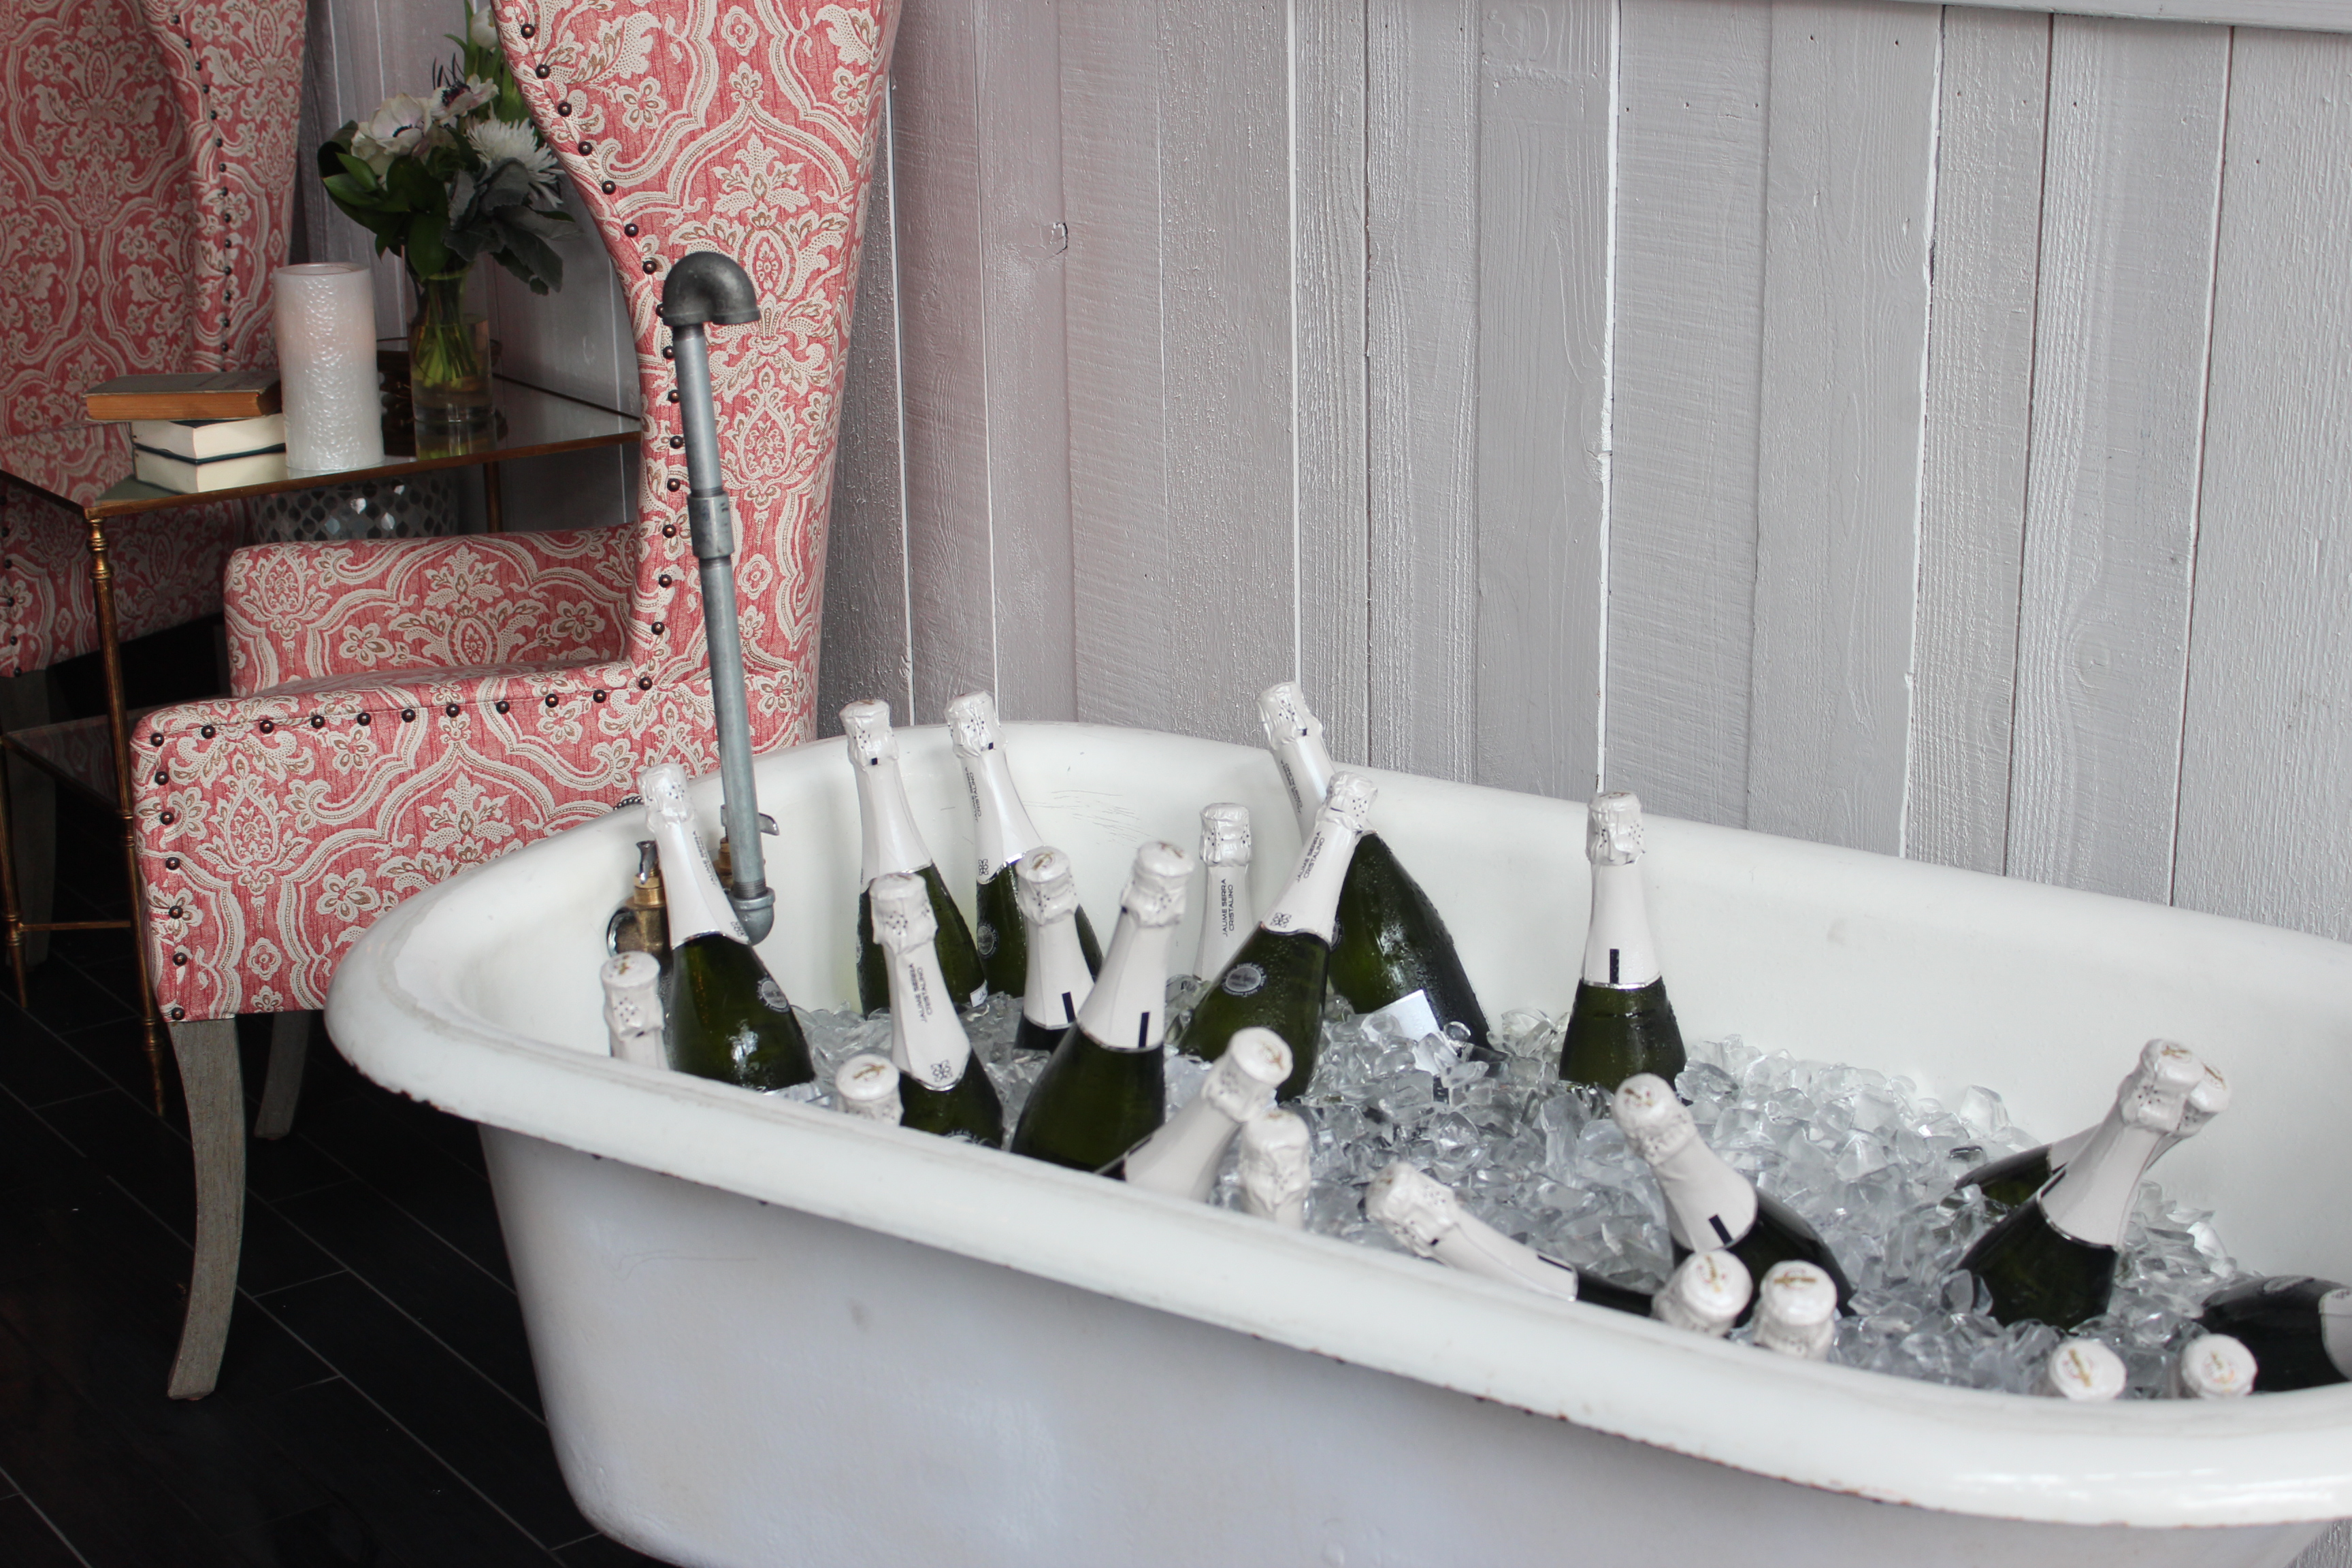 champagne filled bath tub, champagne bath tub, champagne, menu, bourbon maple syrup, breakfast cheese plate, coffee, brunch, bailiwick, san diego, downtown, gaslamp, interior design, chandeliers